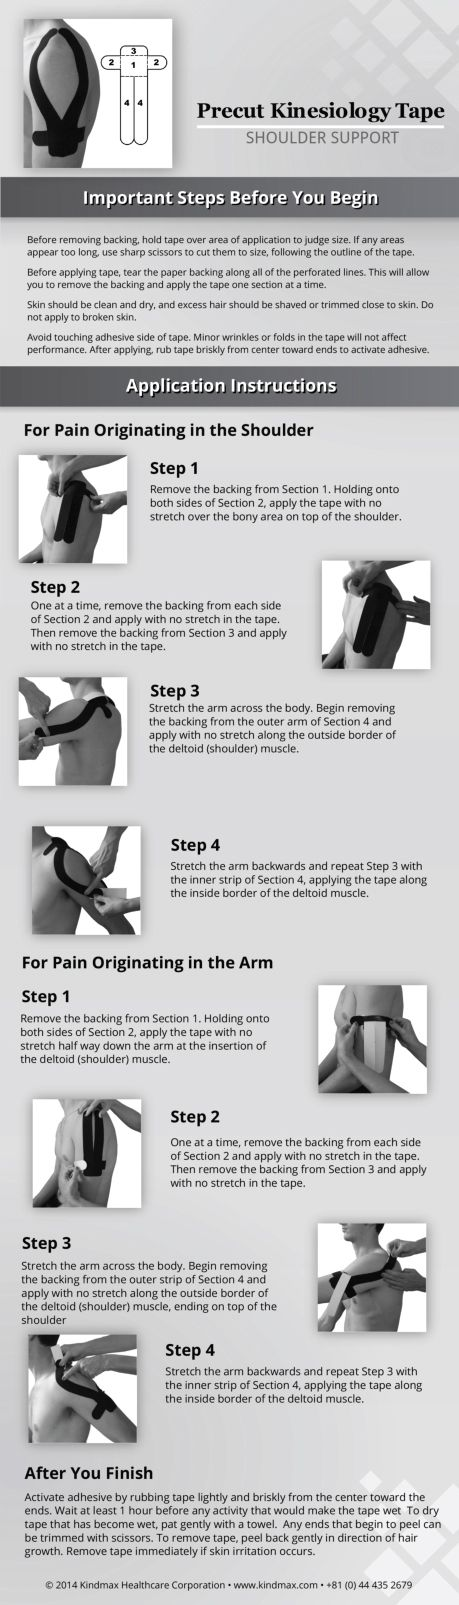 Support your shoulder with kinesiology tape  #ShoulderTaping #HowToApplyKtape #ShoulderTreatment